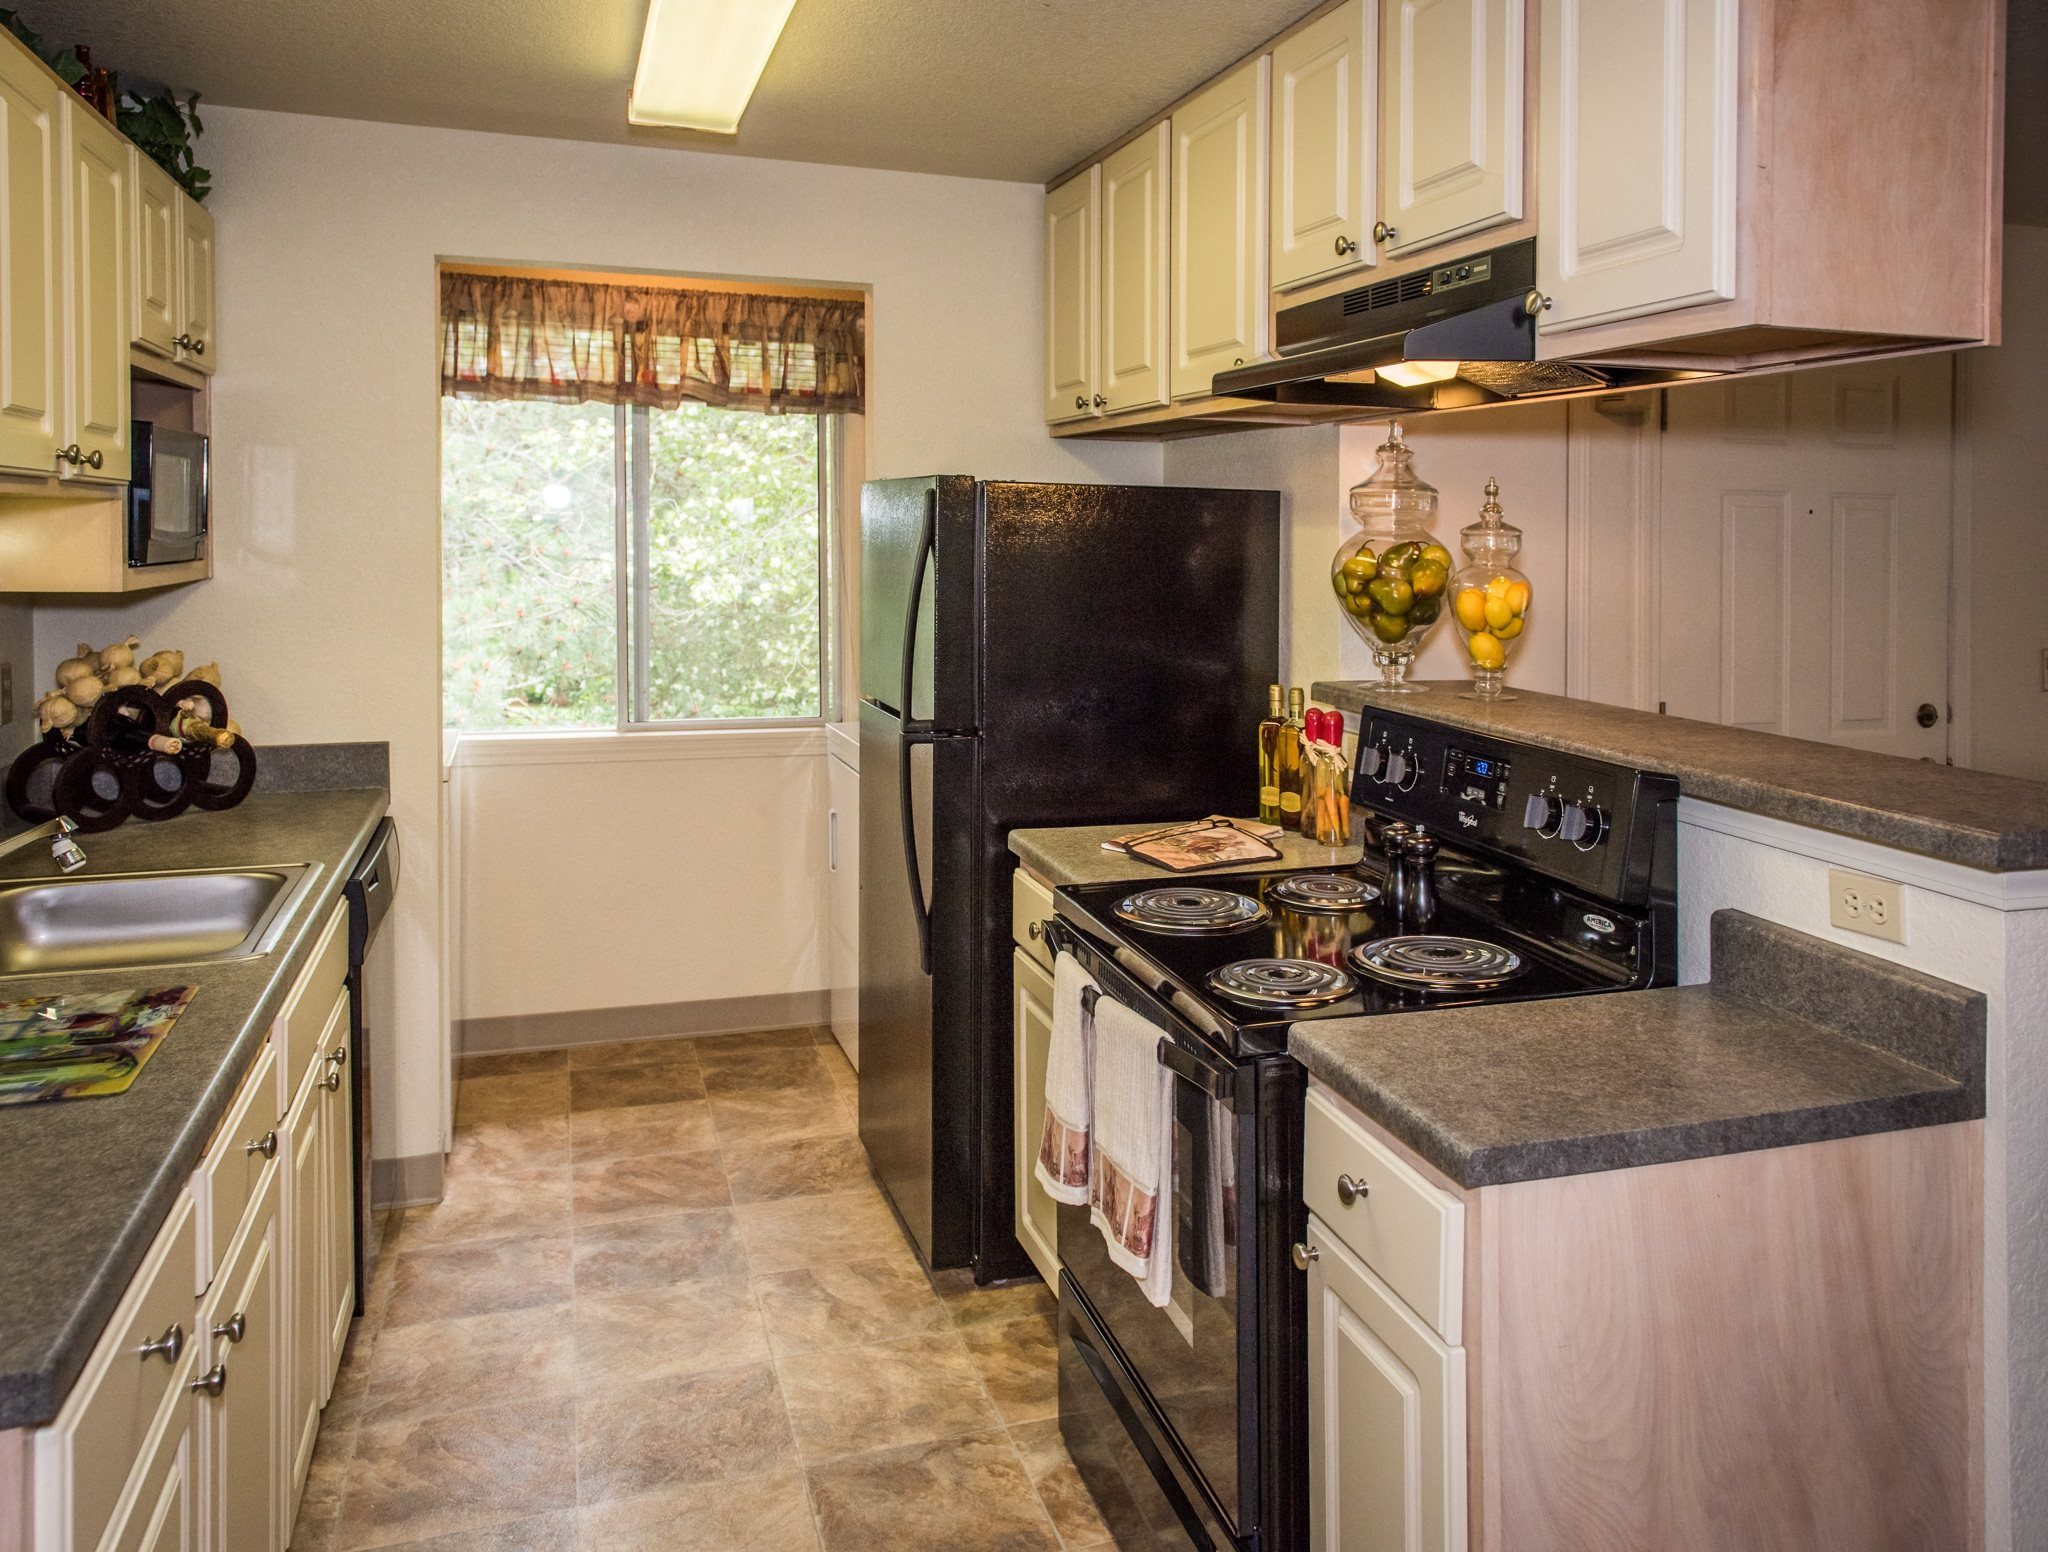 Kings Court Apartments Model Apartment Upgraded Kitchen & Window